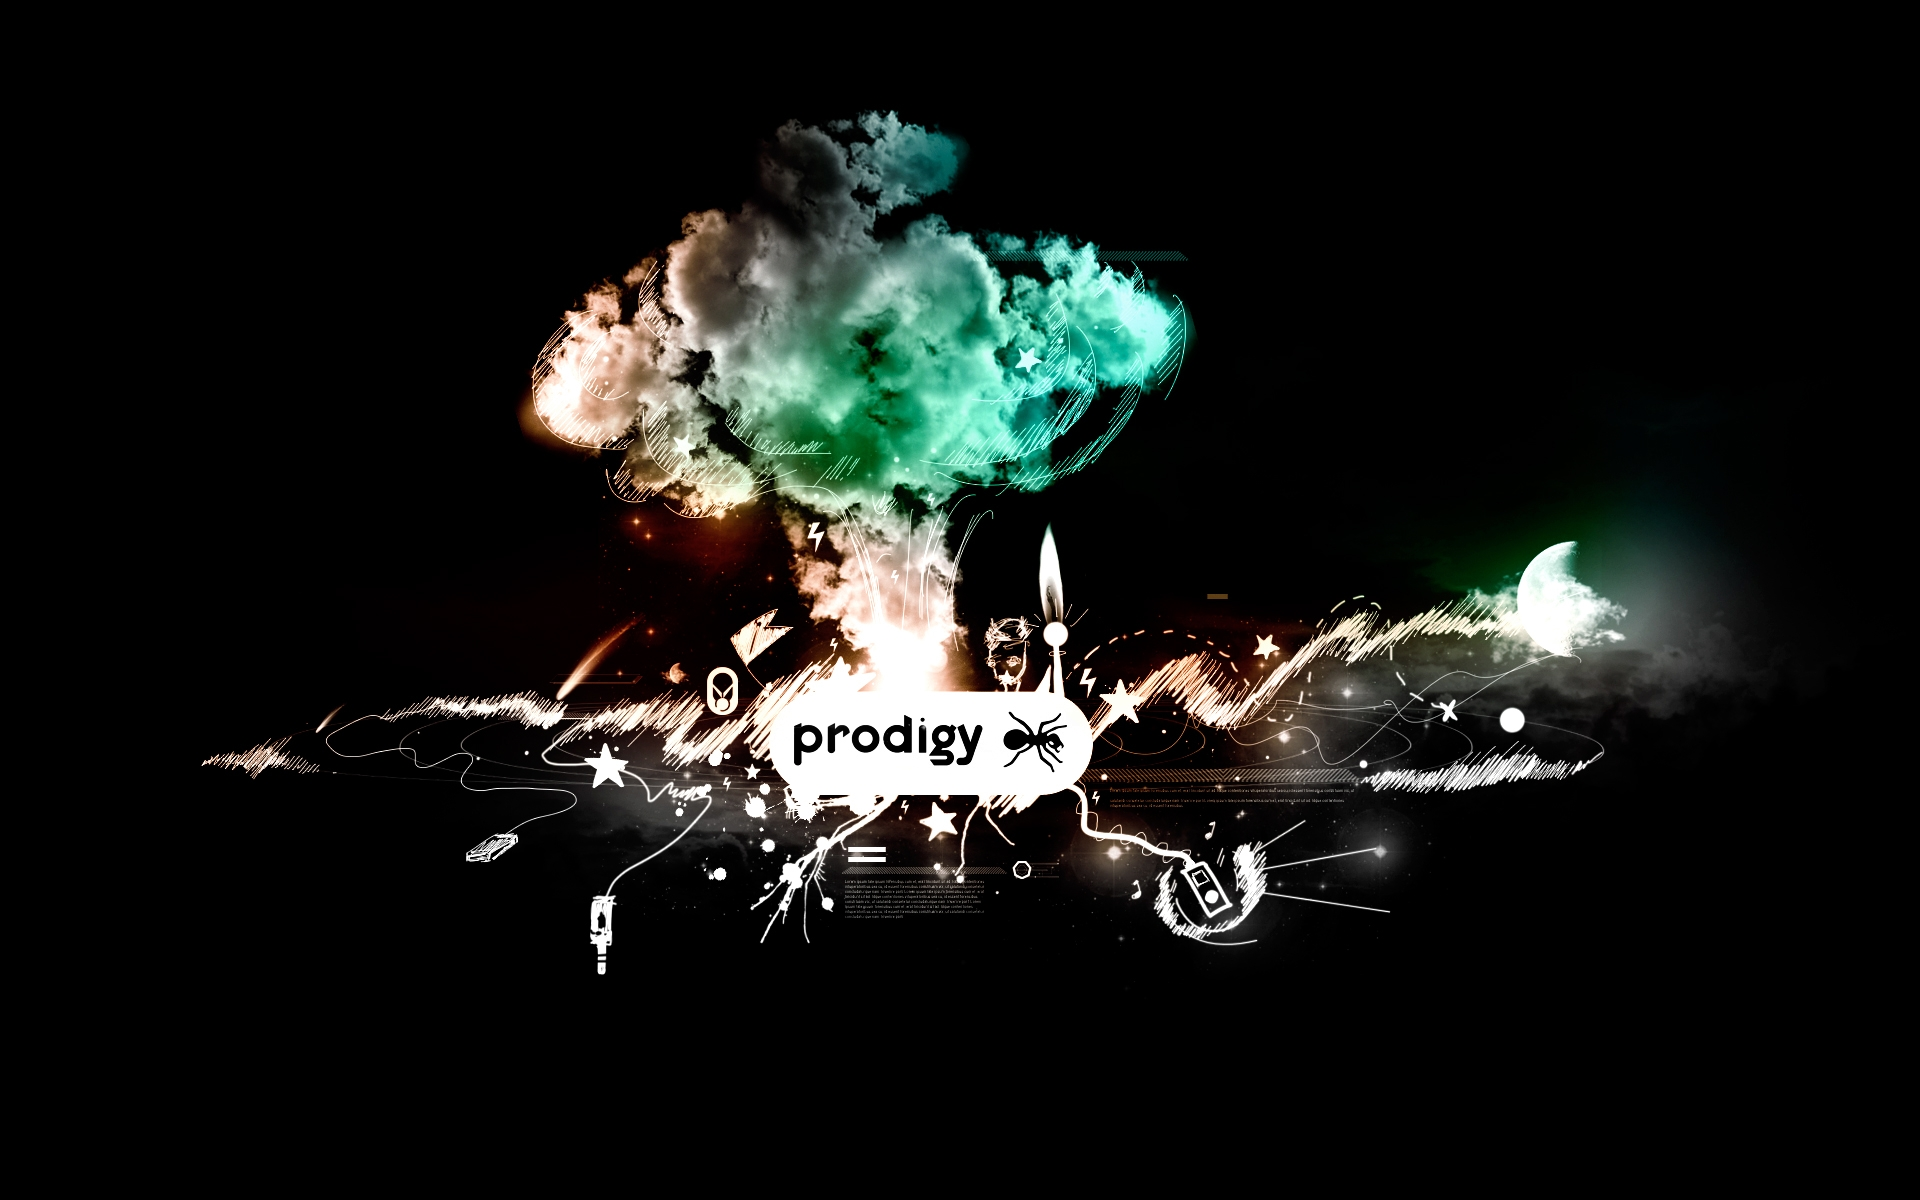 Hd Music Wallpapers For Android Group 62: The Prodigy Wallpapers, Pictures, Images